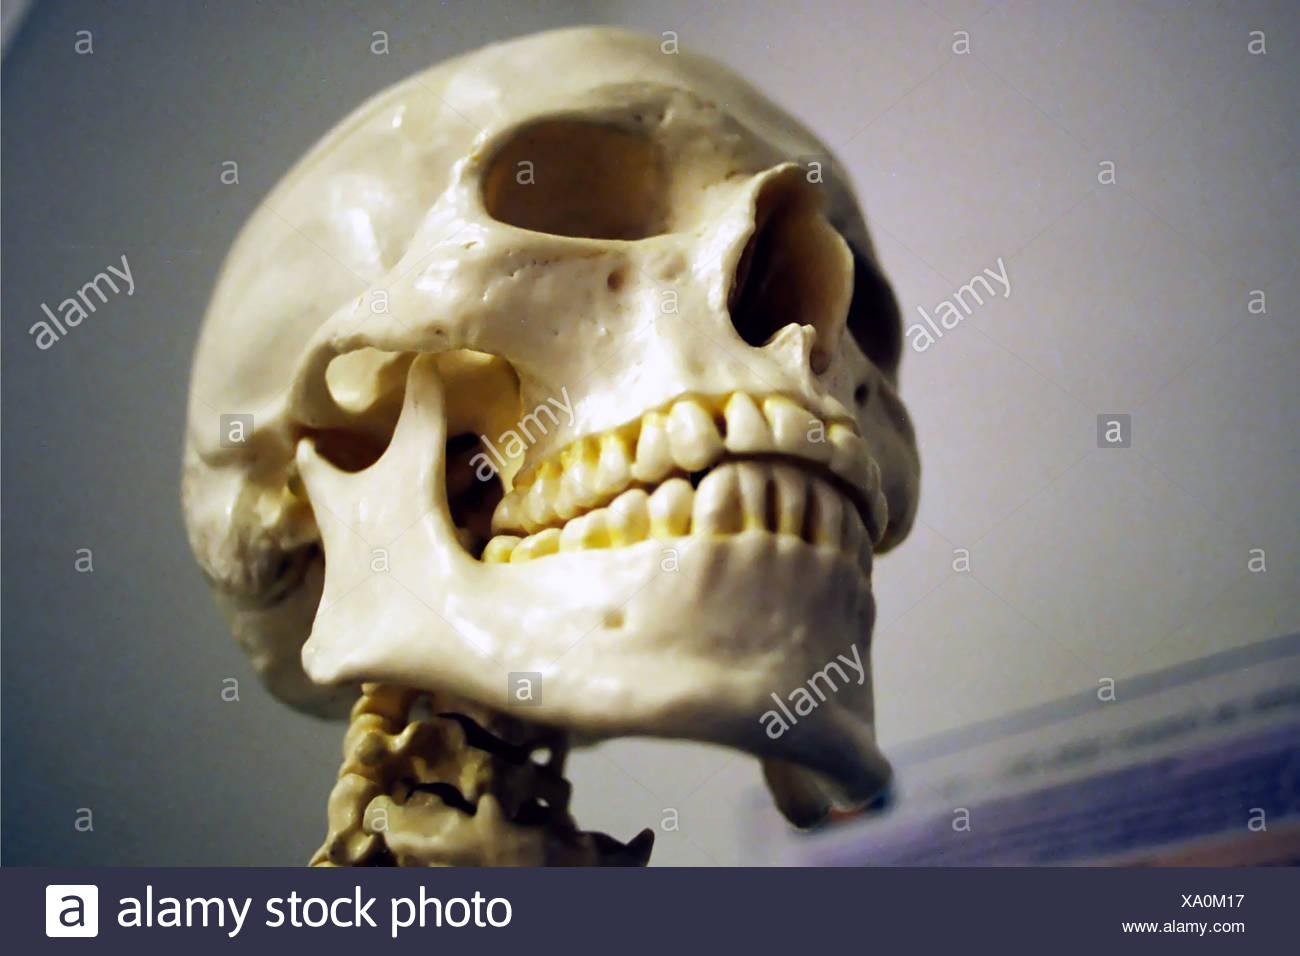 Zygomaticum Stock Photos & Zygomaticum Stock Images - Alamy